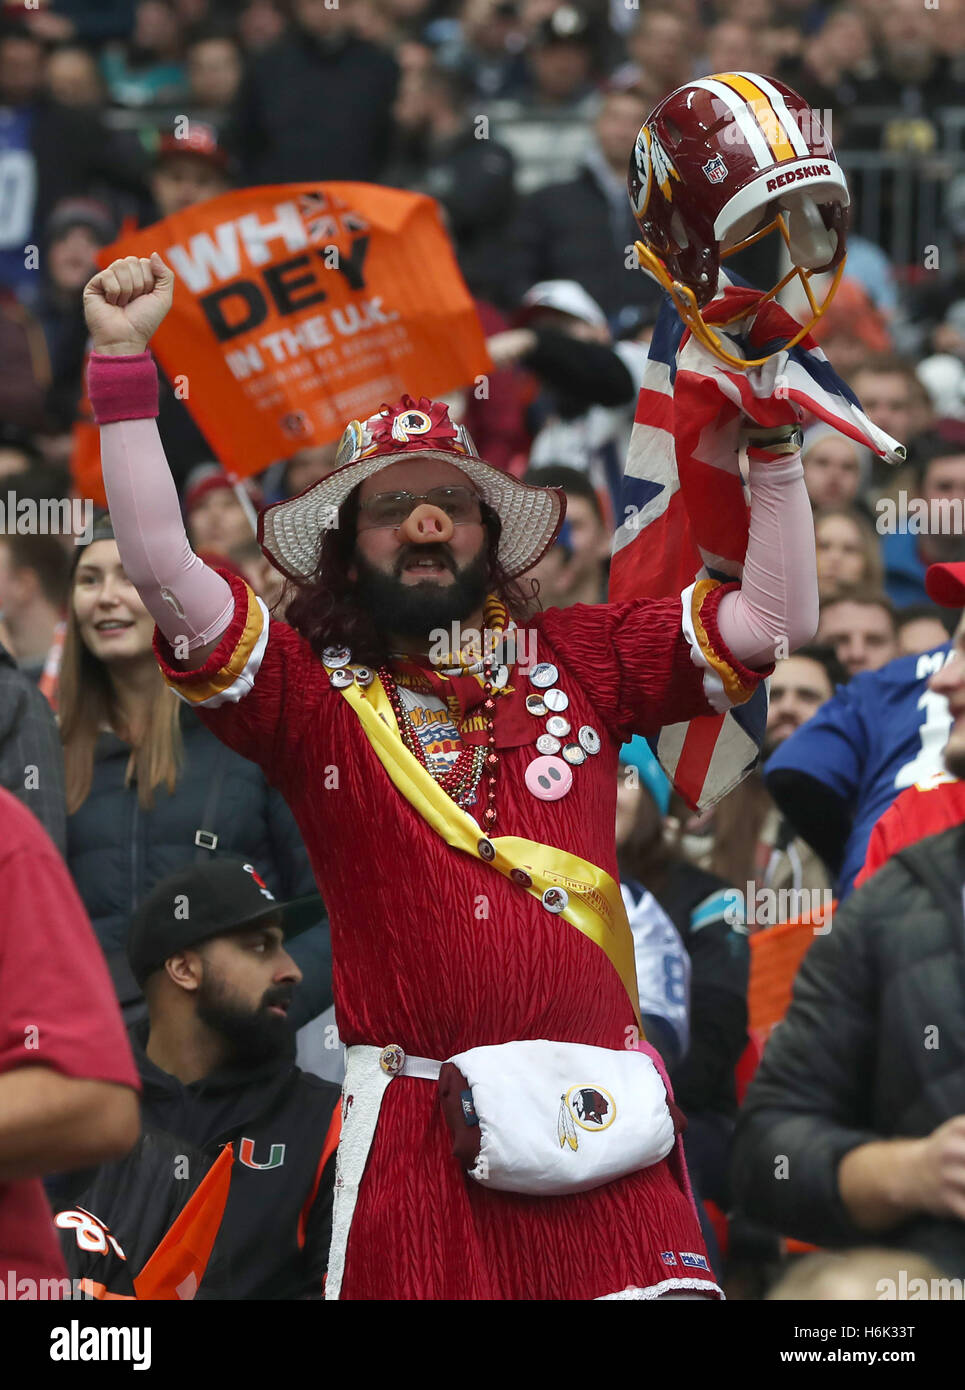 c31267e1 Washington Redskins fans during the NFL International Series match ...